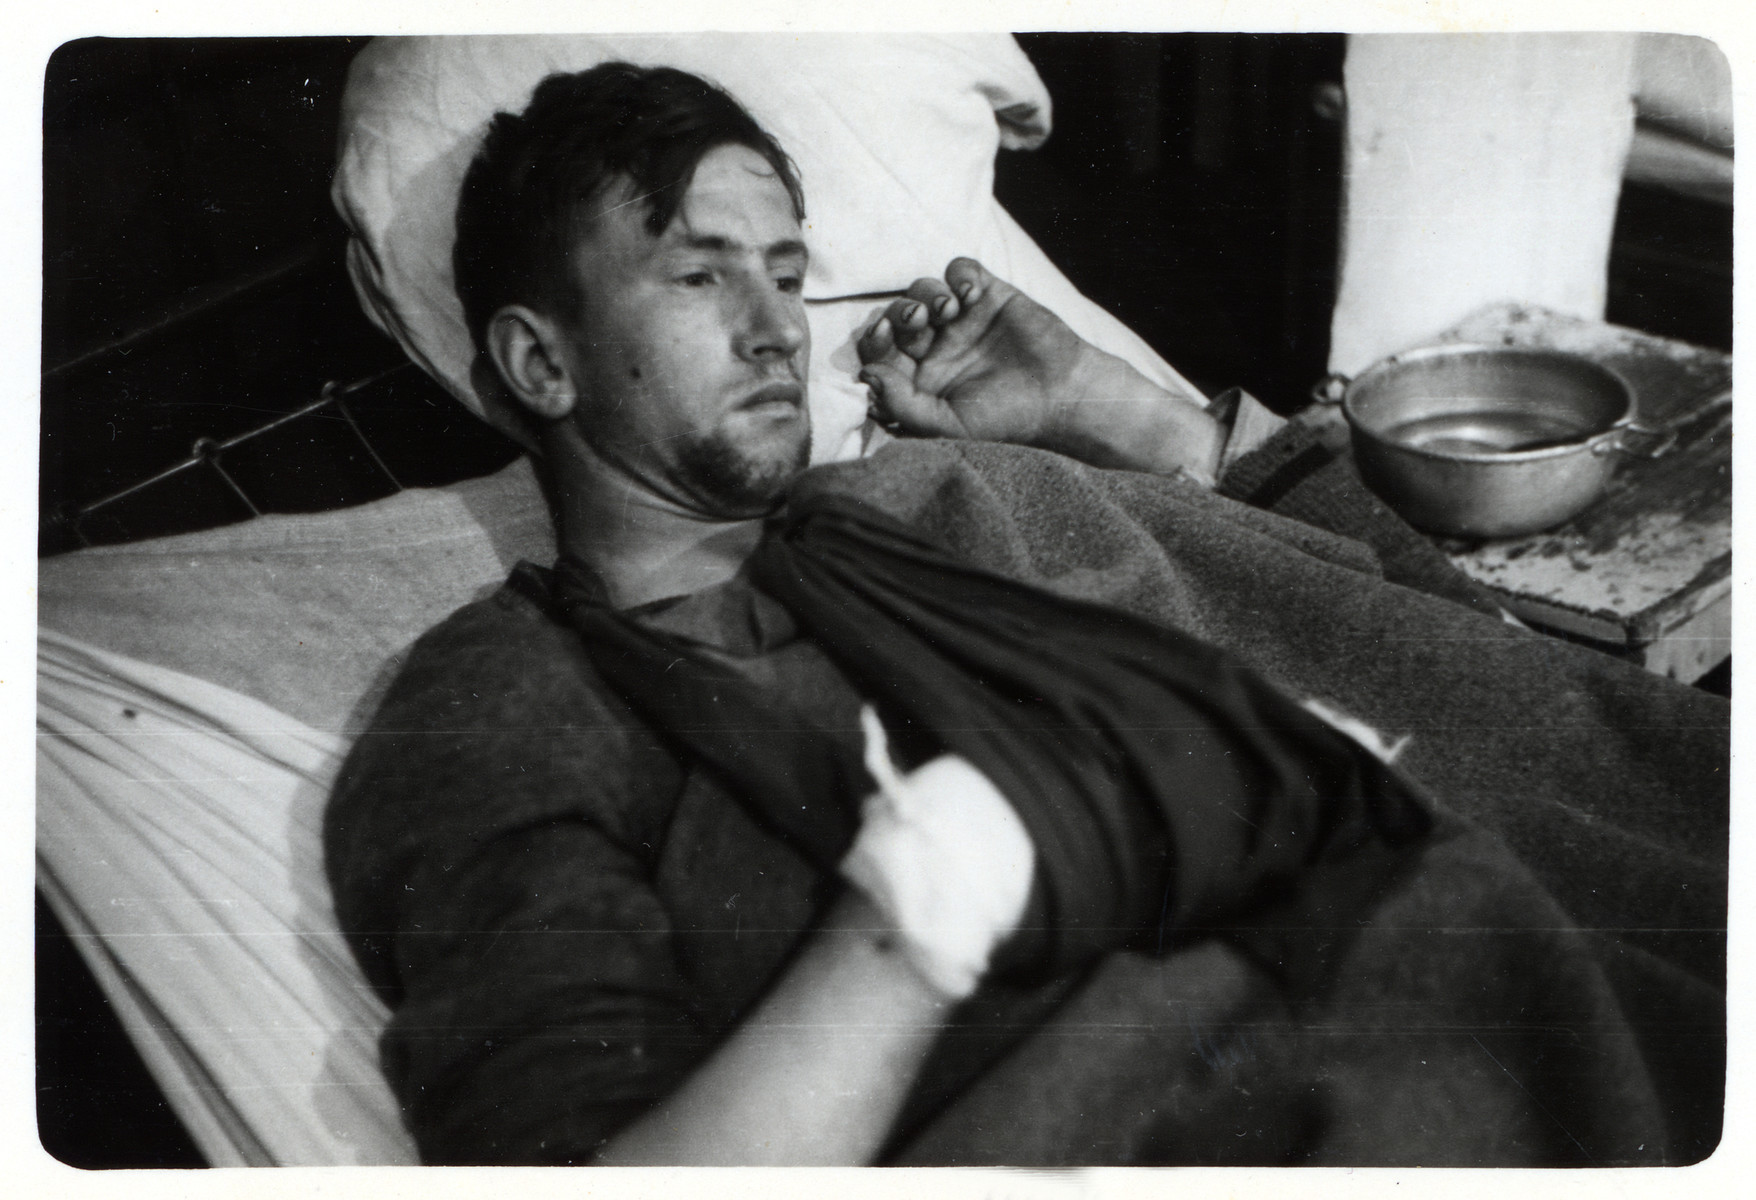 A wounded German POW rests in a hospital bed.